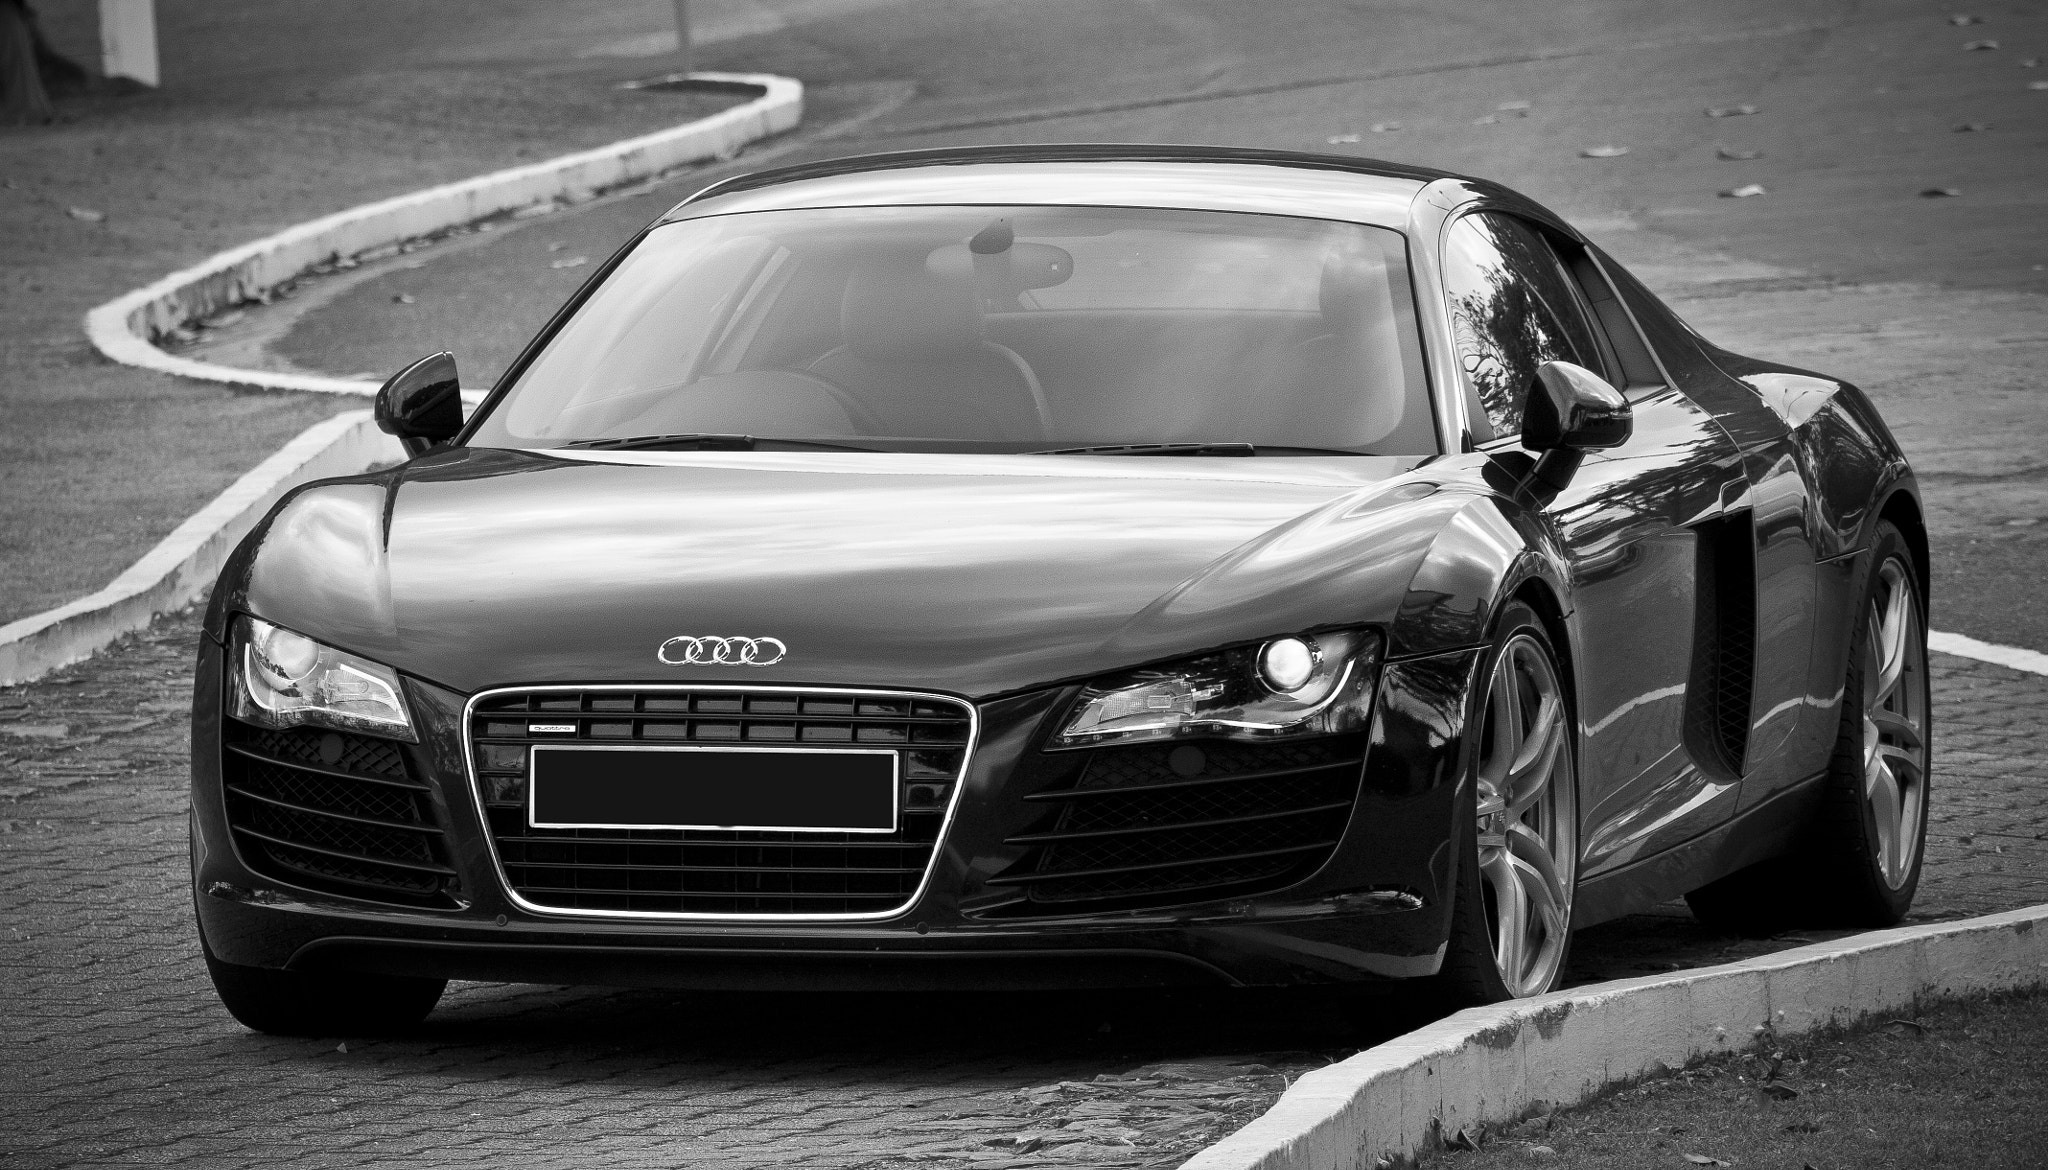 Photograph Audi R8 by Jude Roberts on 500px